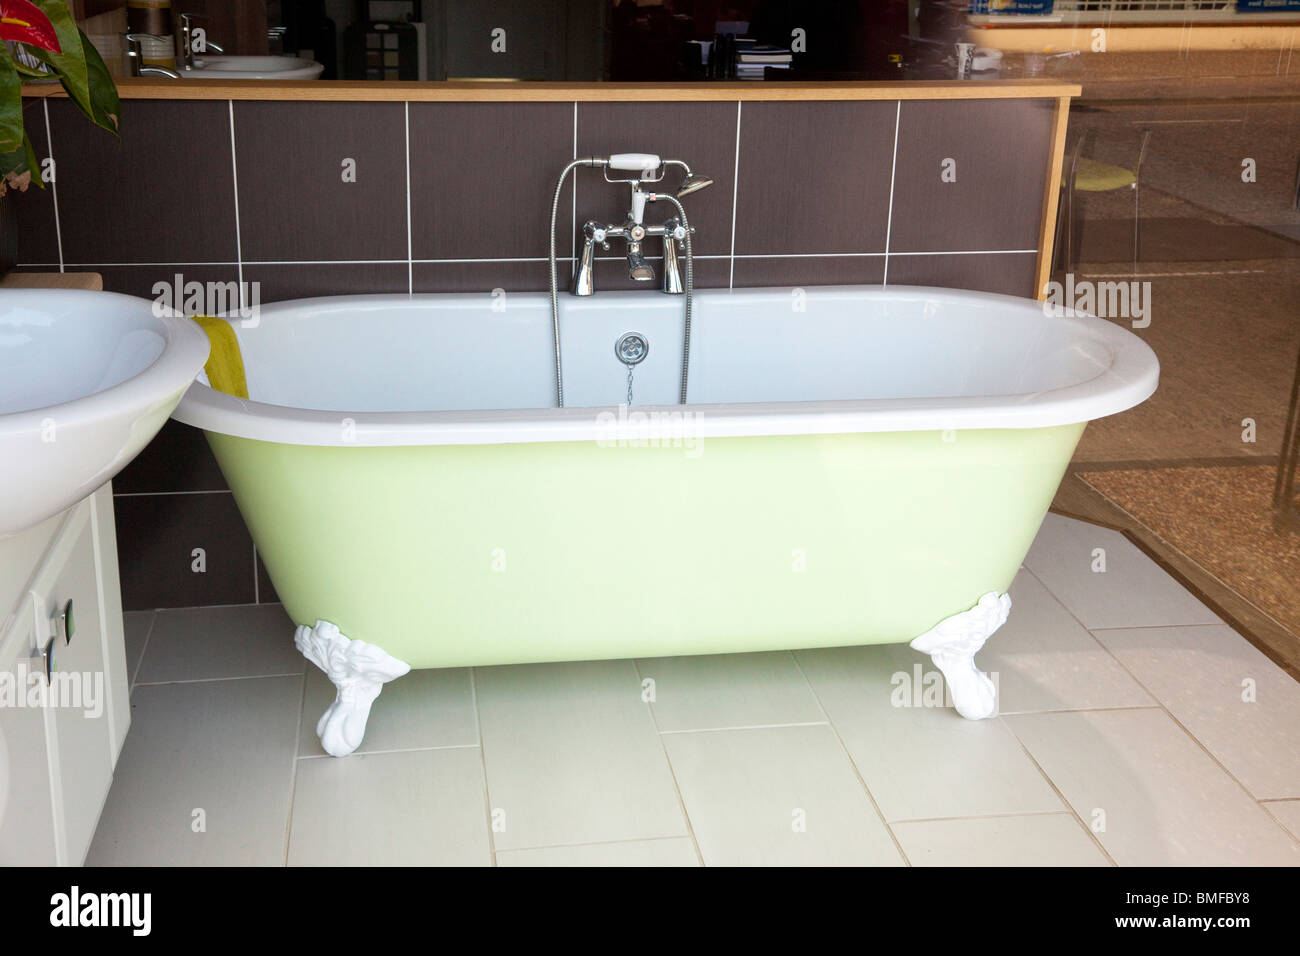 Shop Bagno Vasca Da Bagno In Un Bagno Shop Showroom Foto Immagine Stock